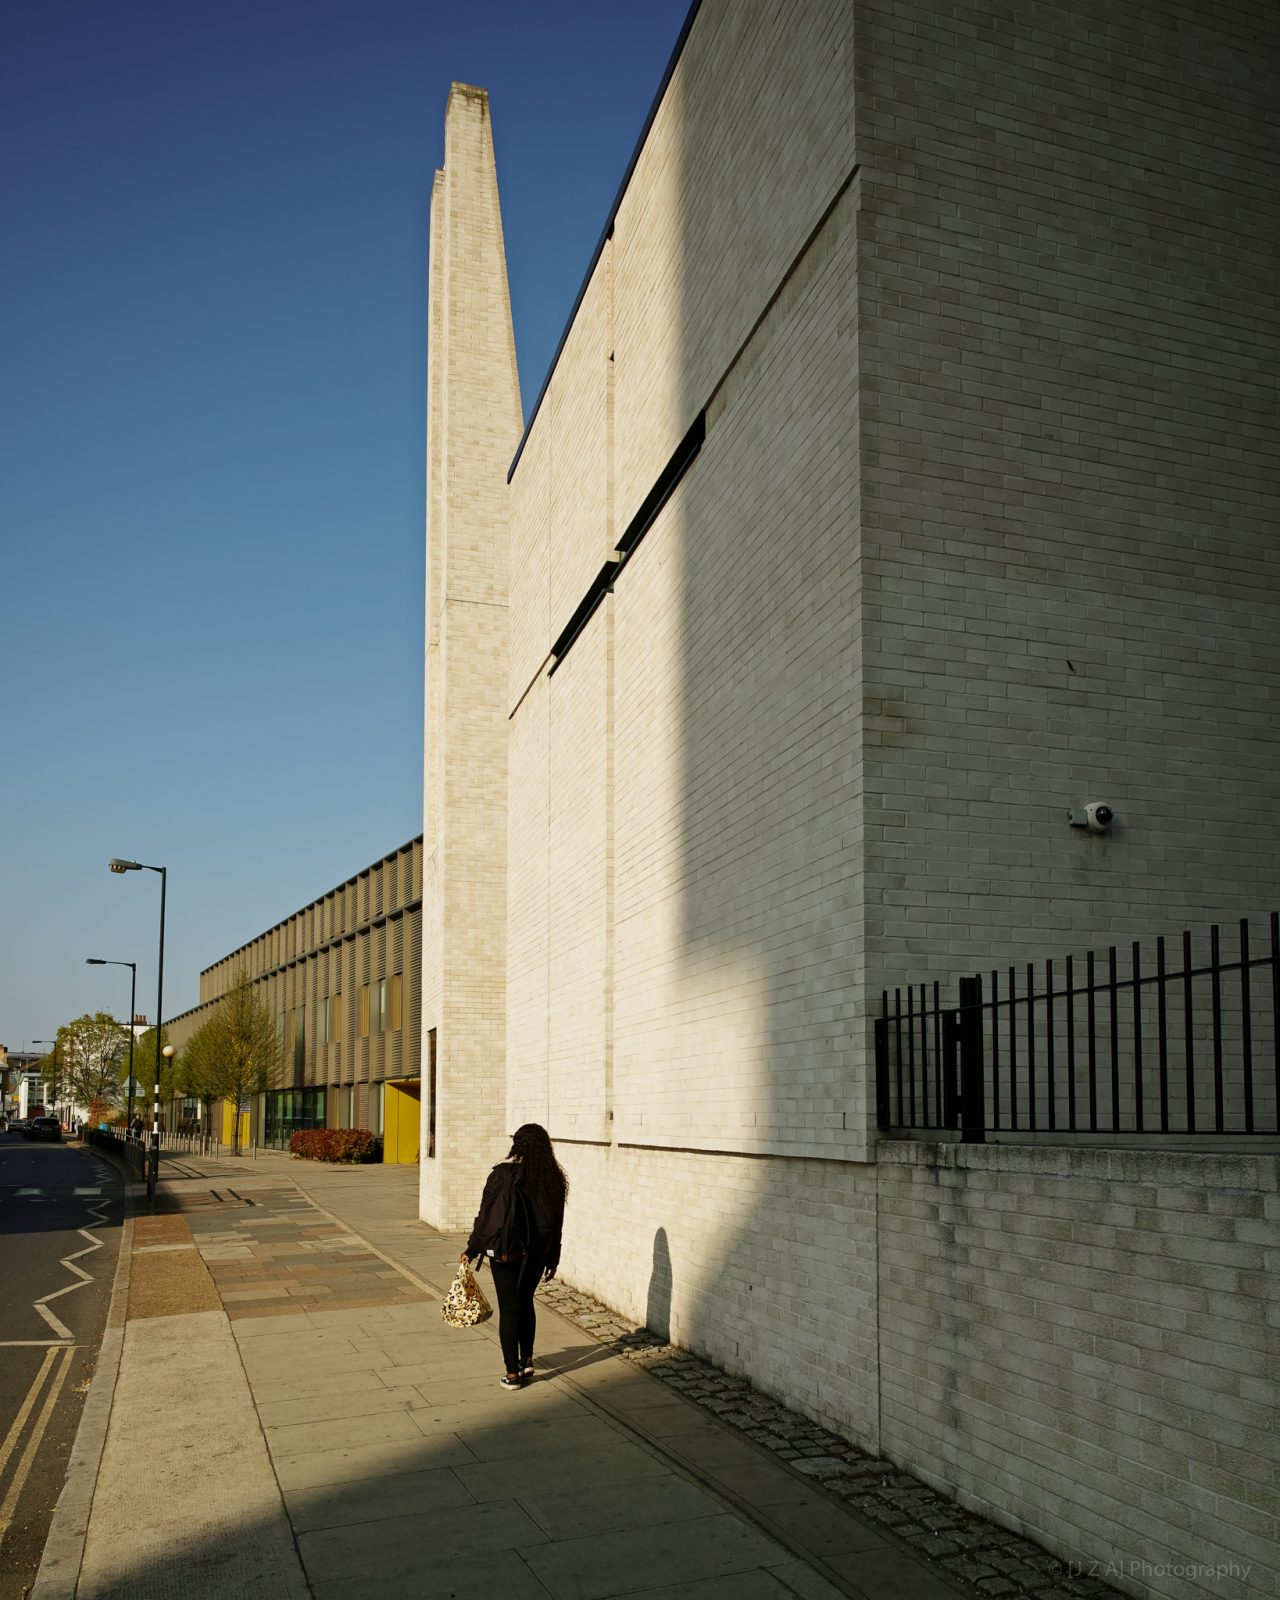 Parish Church of Camberwell